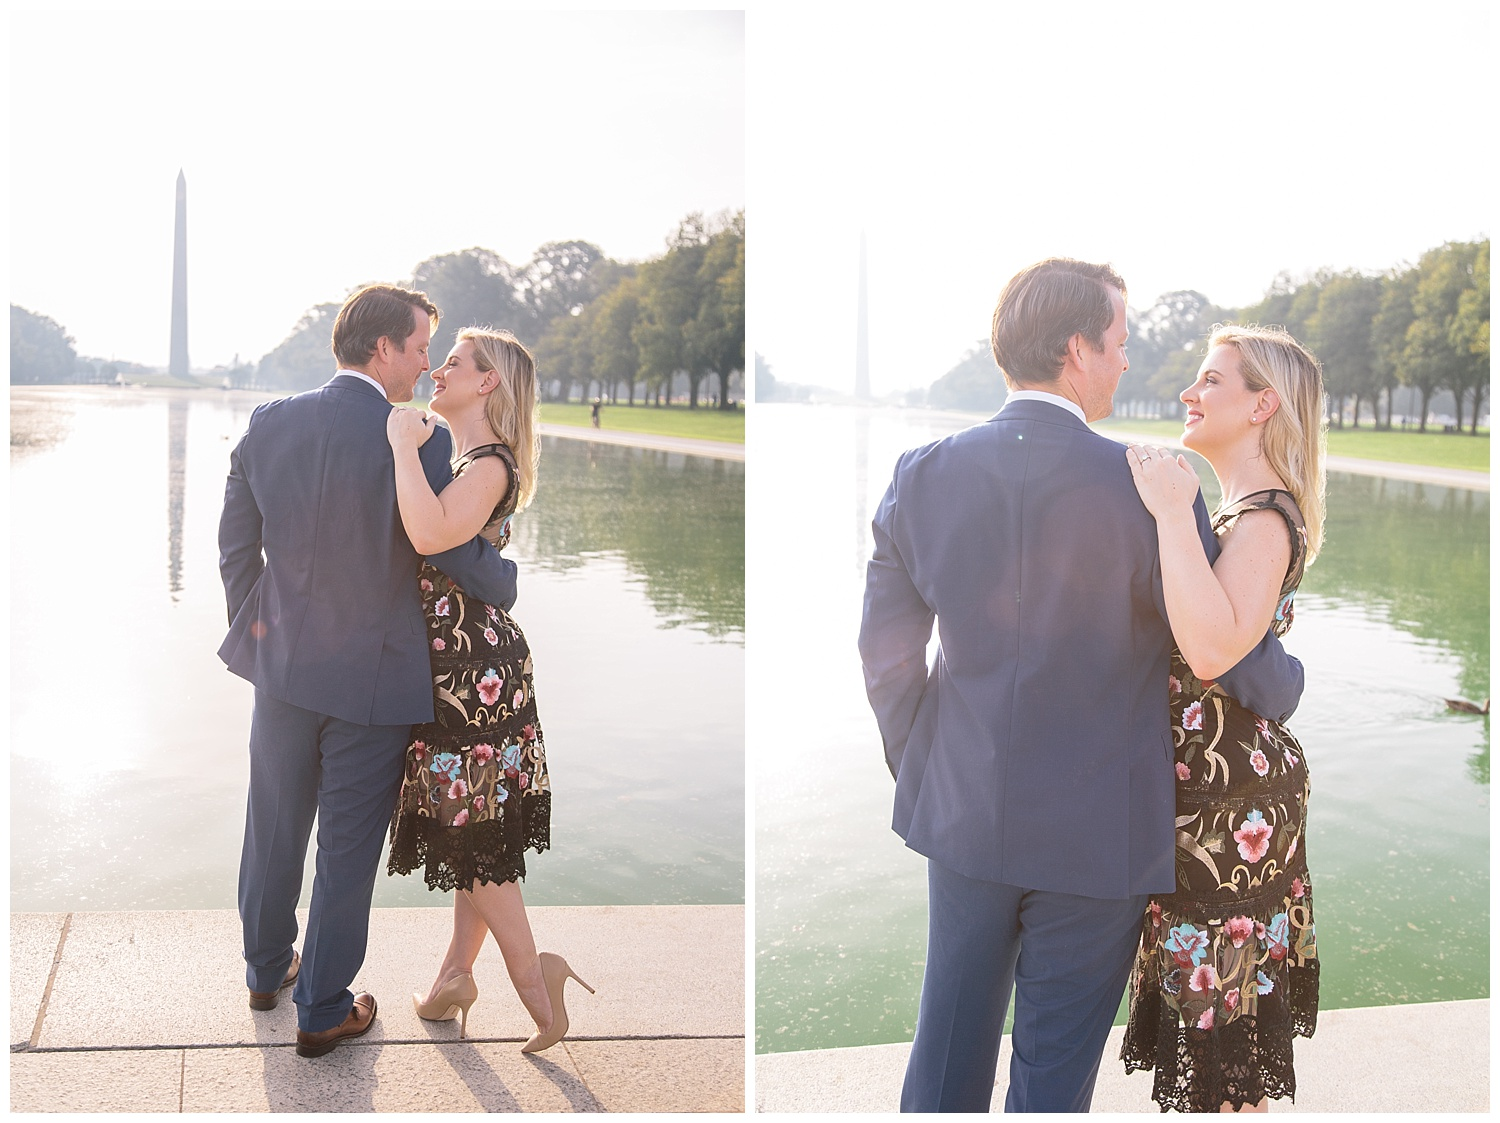 emily-belson-photography-washington-dc-engagement-emily-john-07.jpg